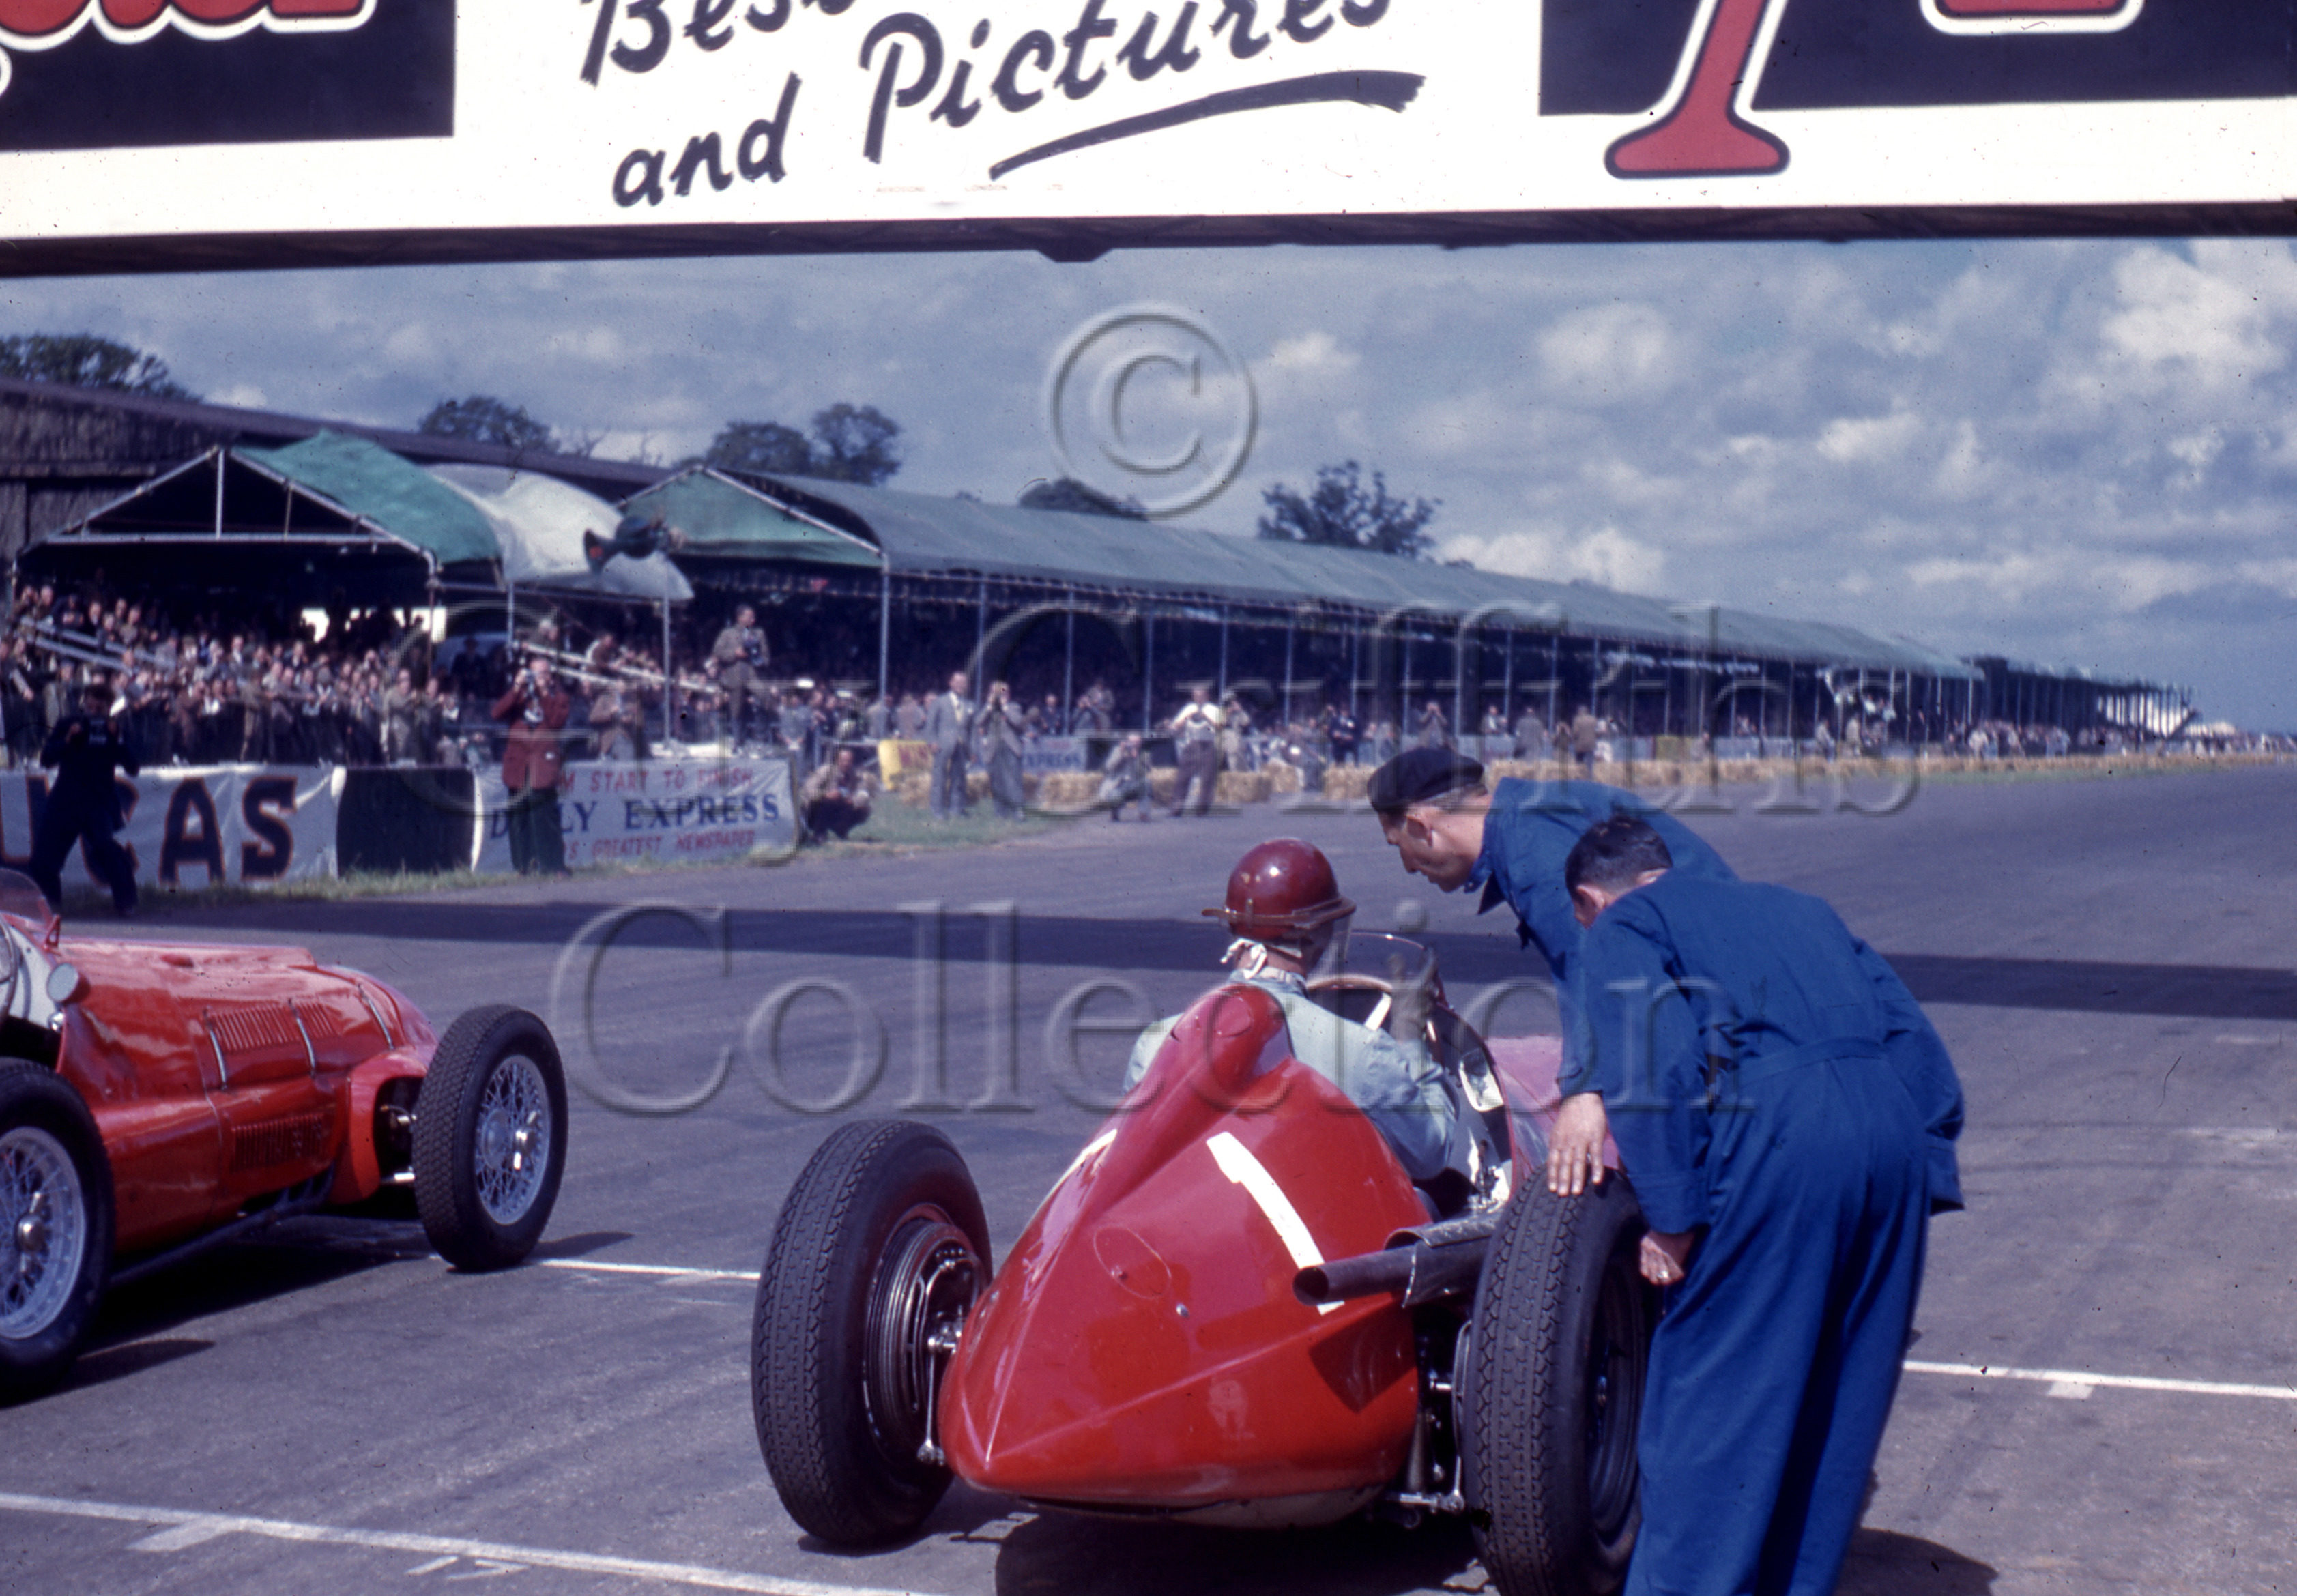 C-3-28–G-Farina–Alfa-Romeo-158–Silverstone–26-08-1950-.jpg - Guy Griffiths Collection